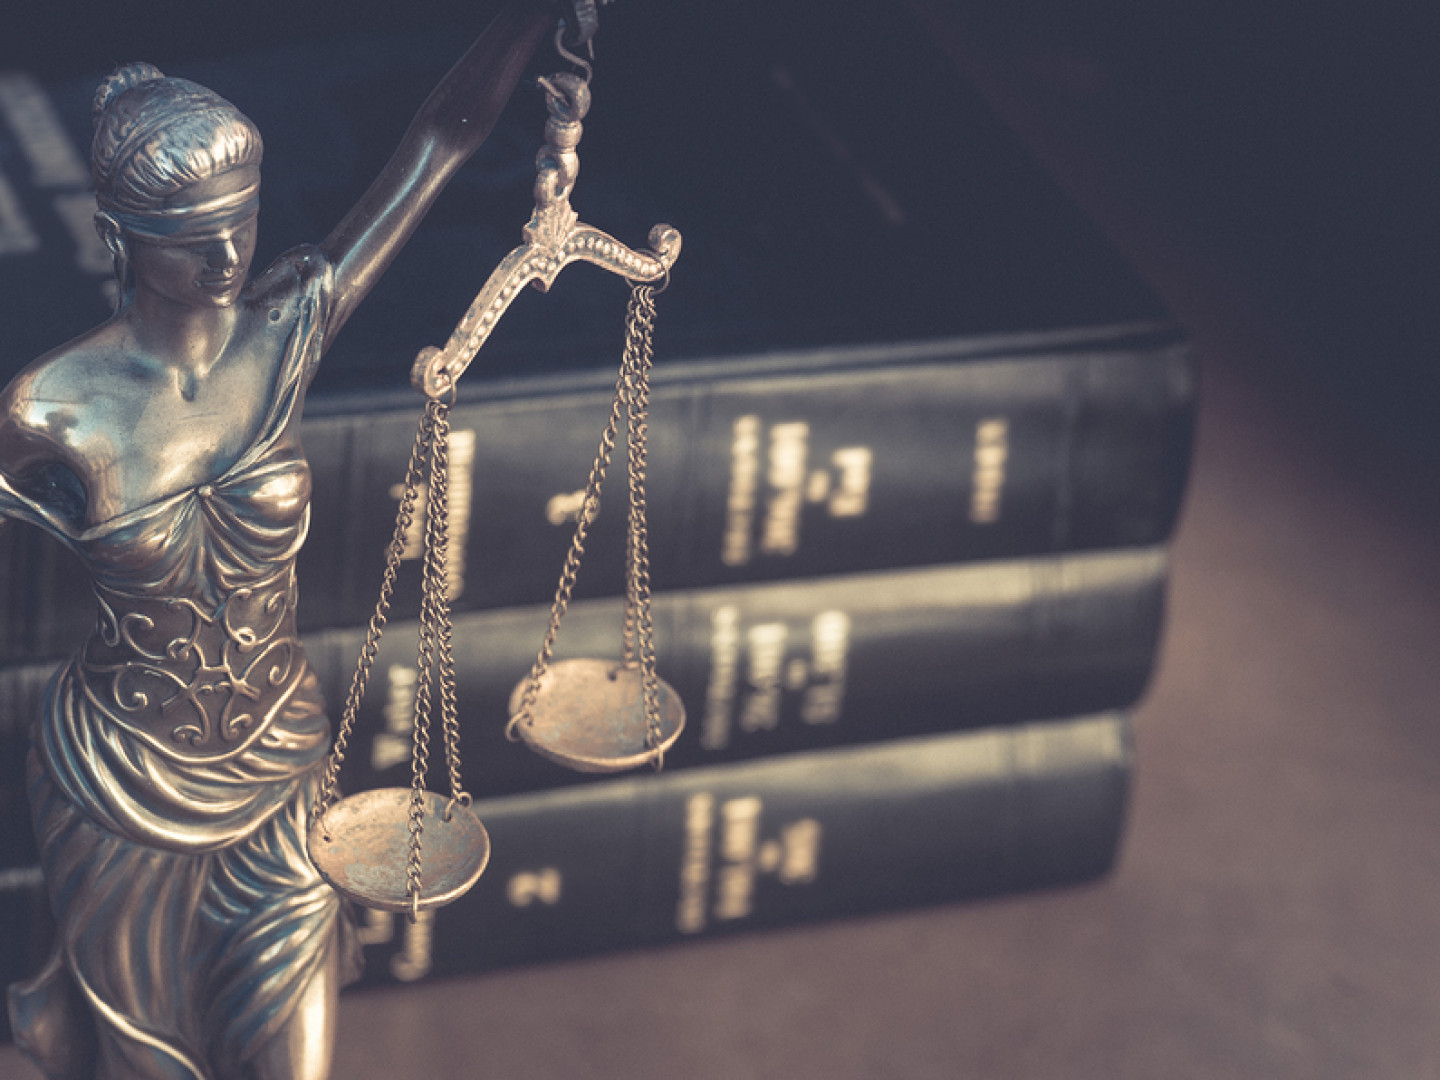 Do you need a criminal law attorney?